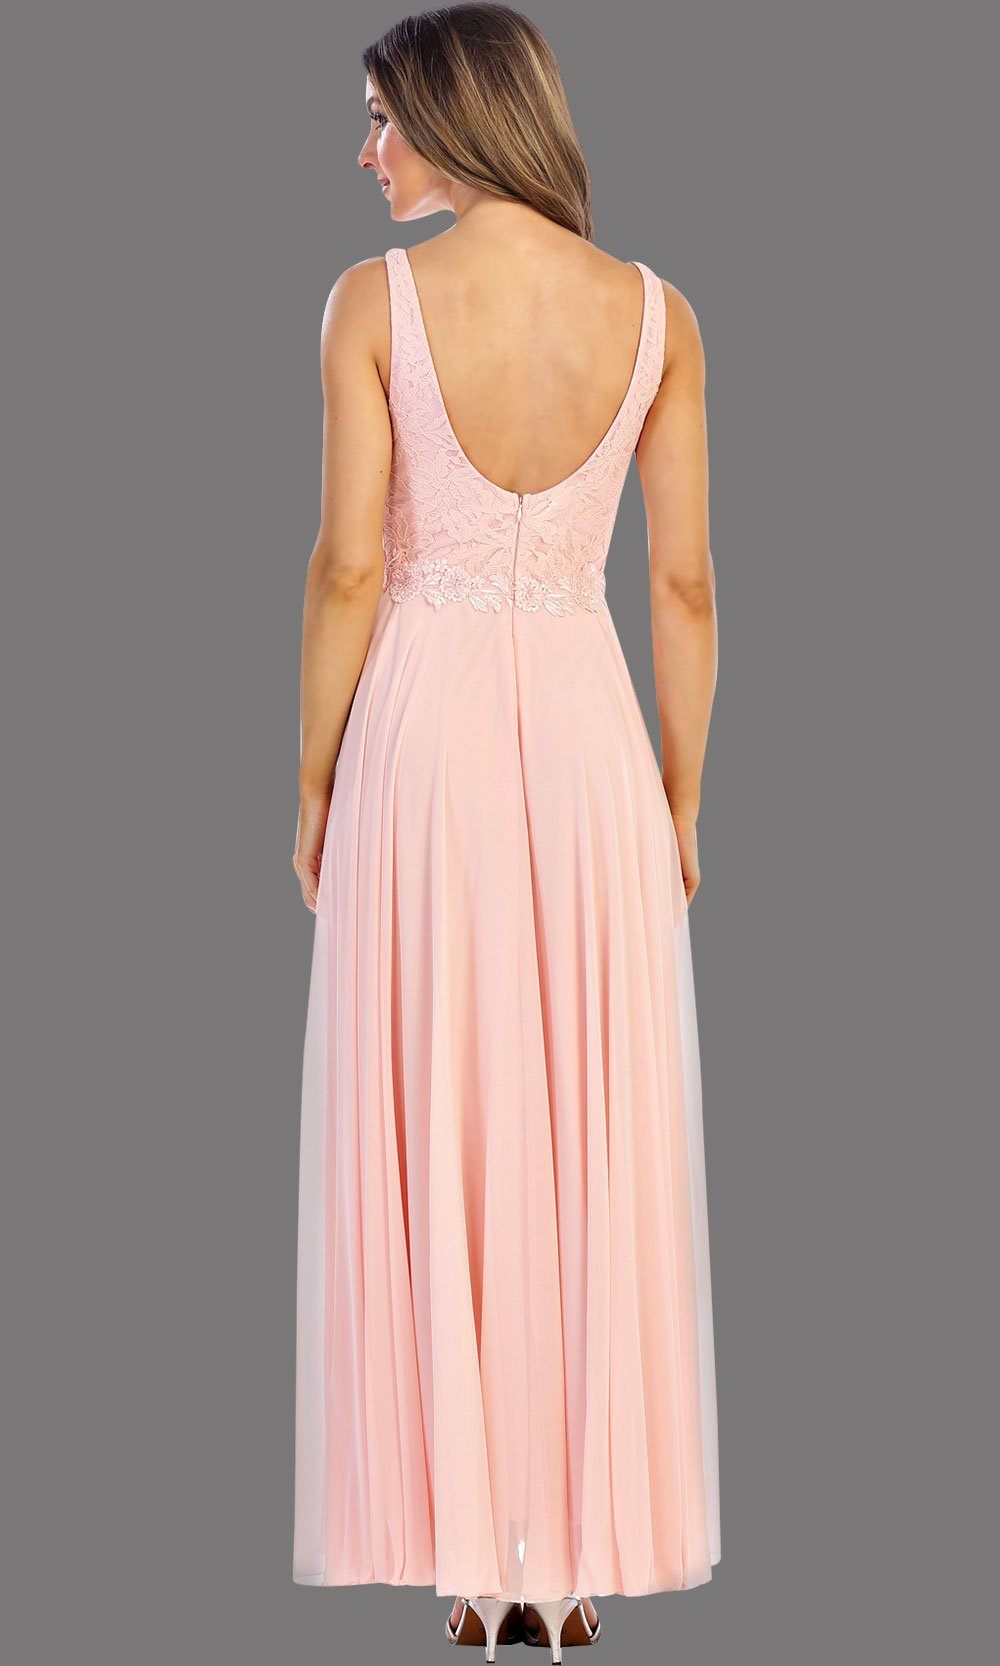 * Long Blush Plunging Neck Dress With Lace Top